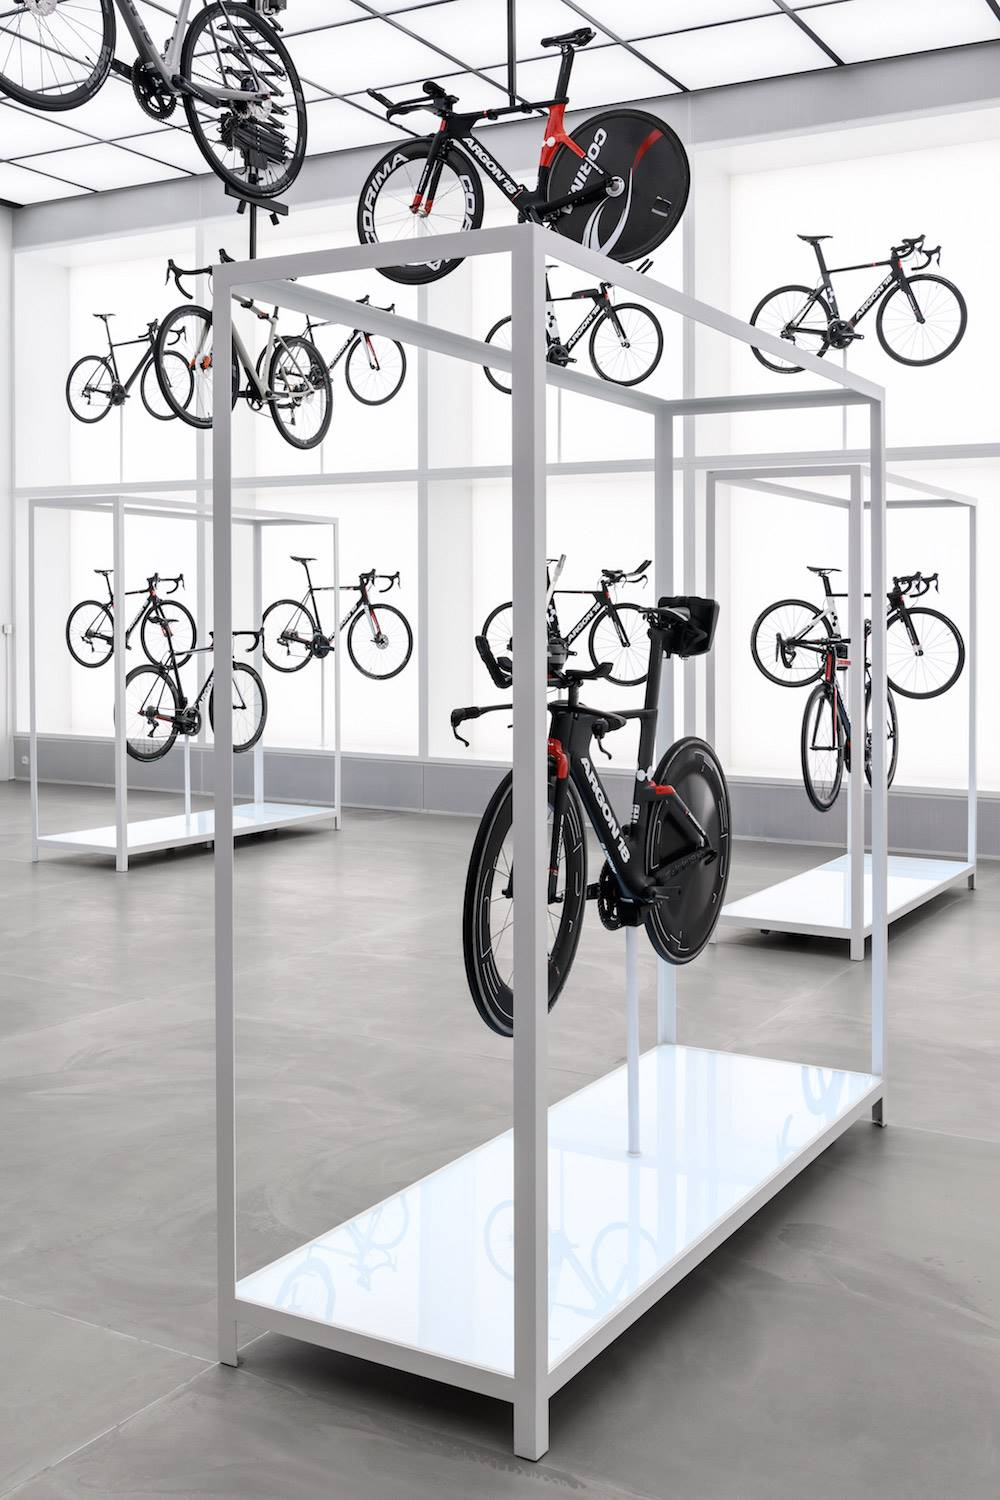 United Cycle Store